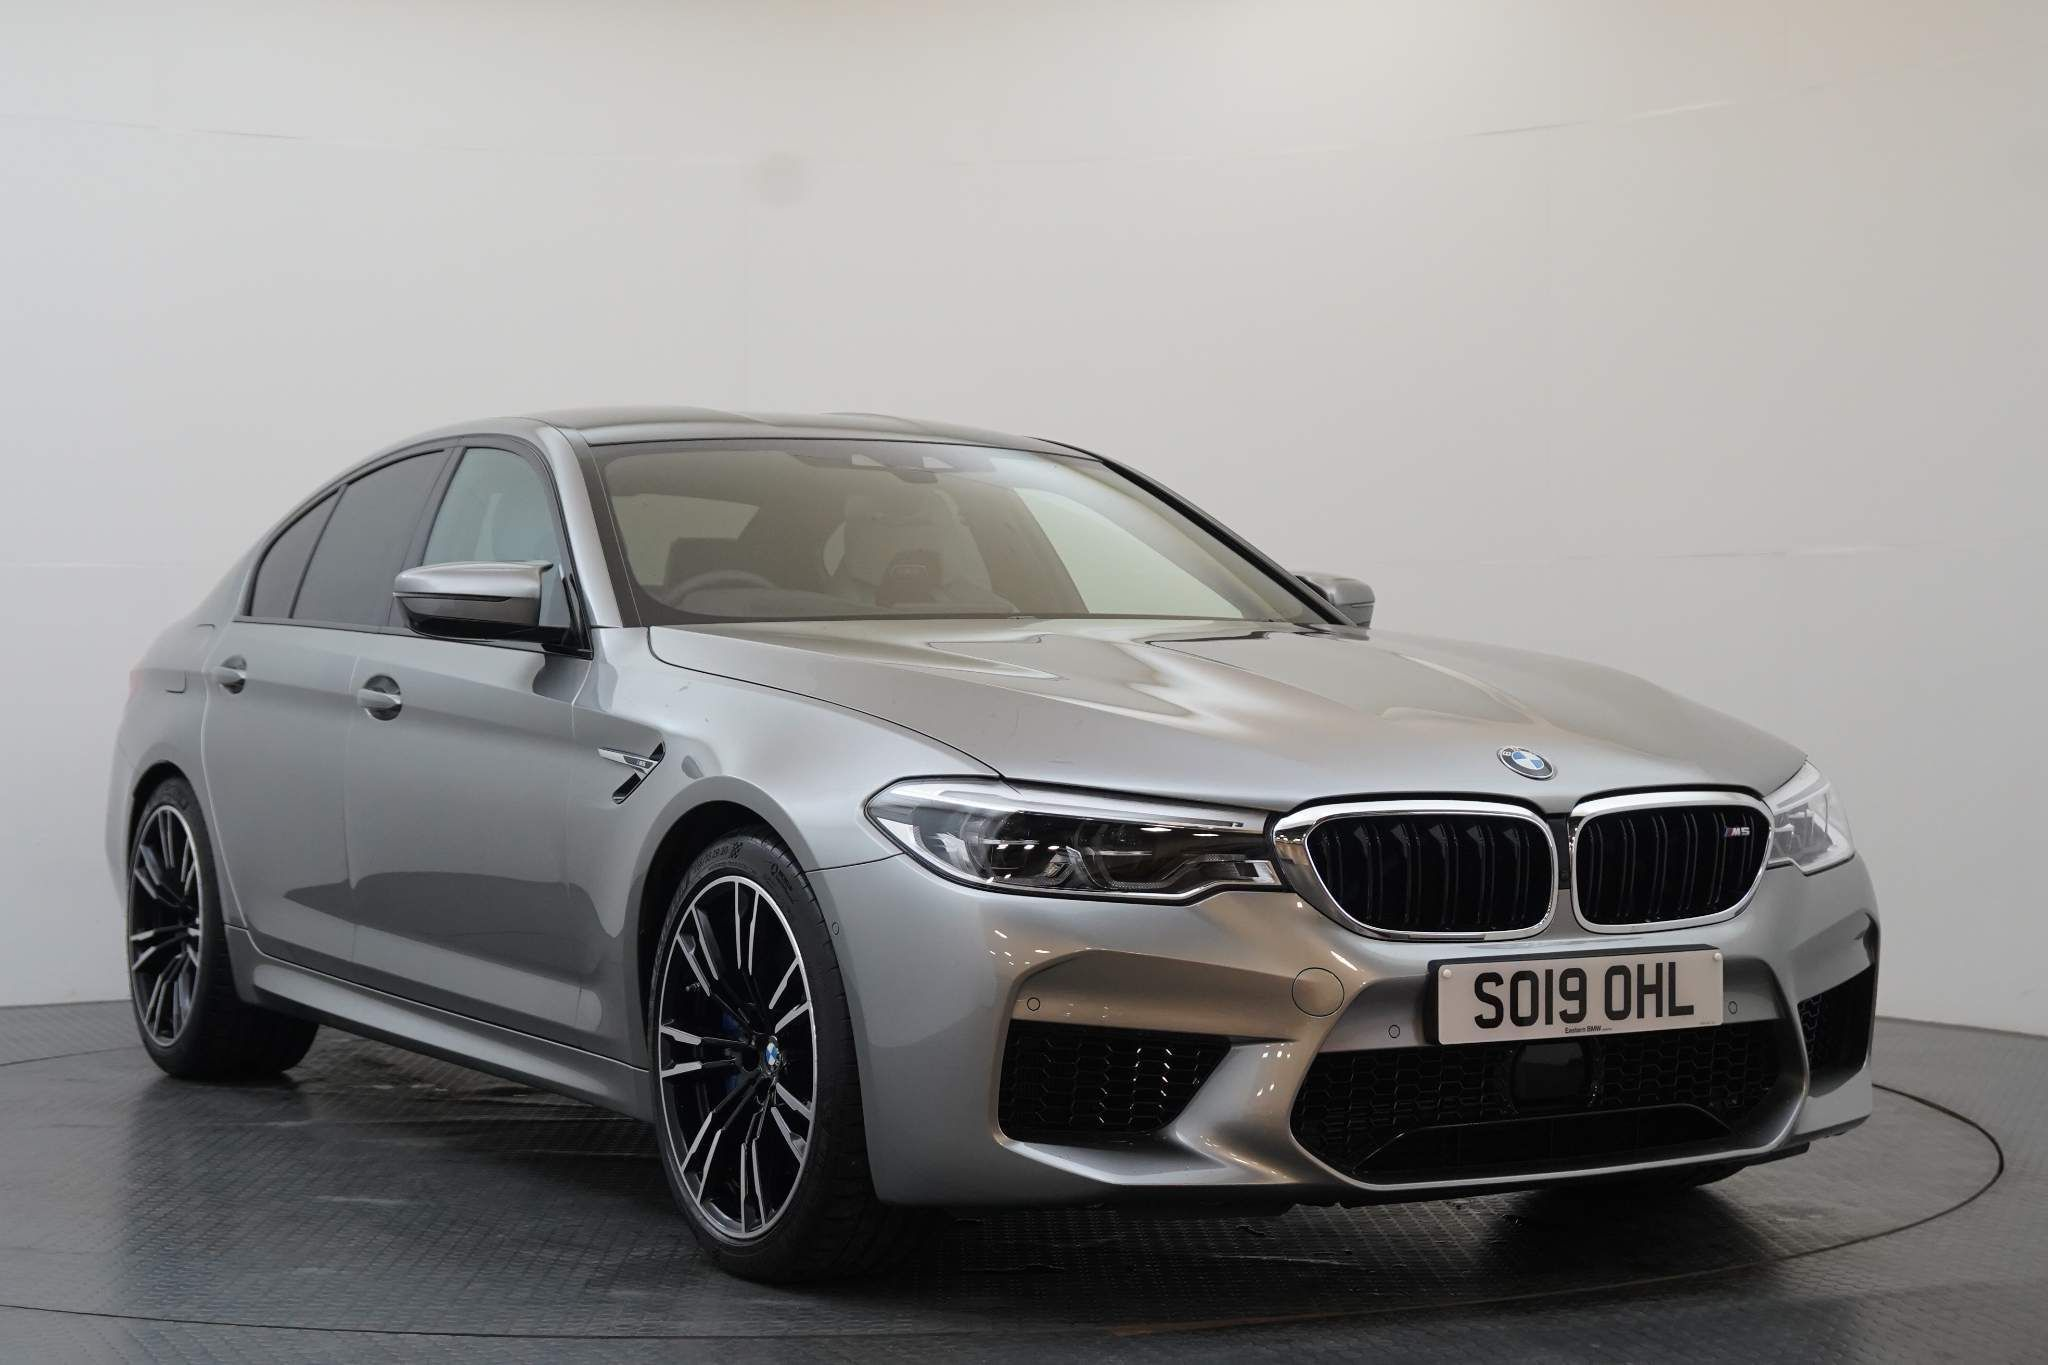 BMW M5 Series for sale